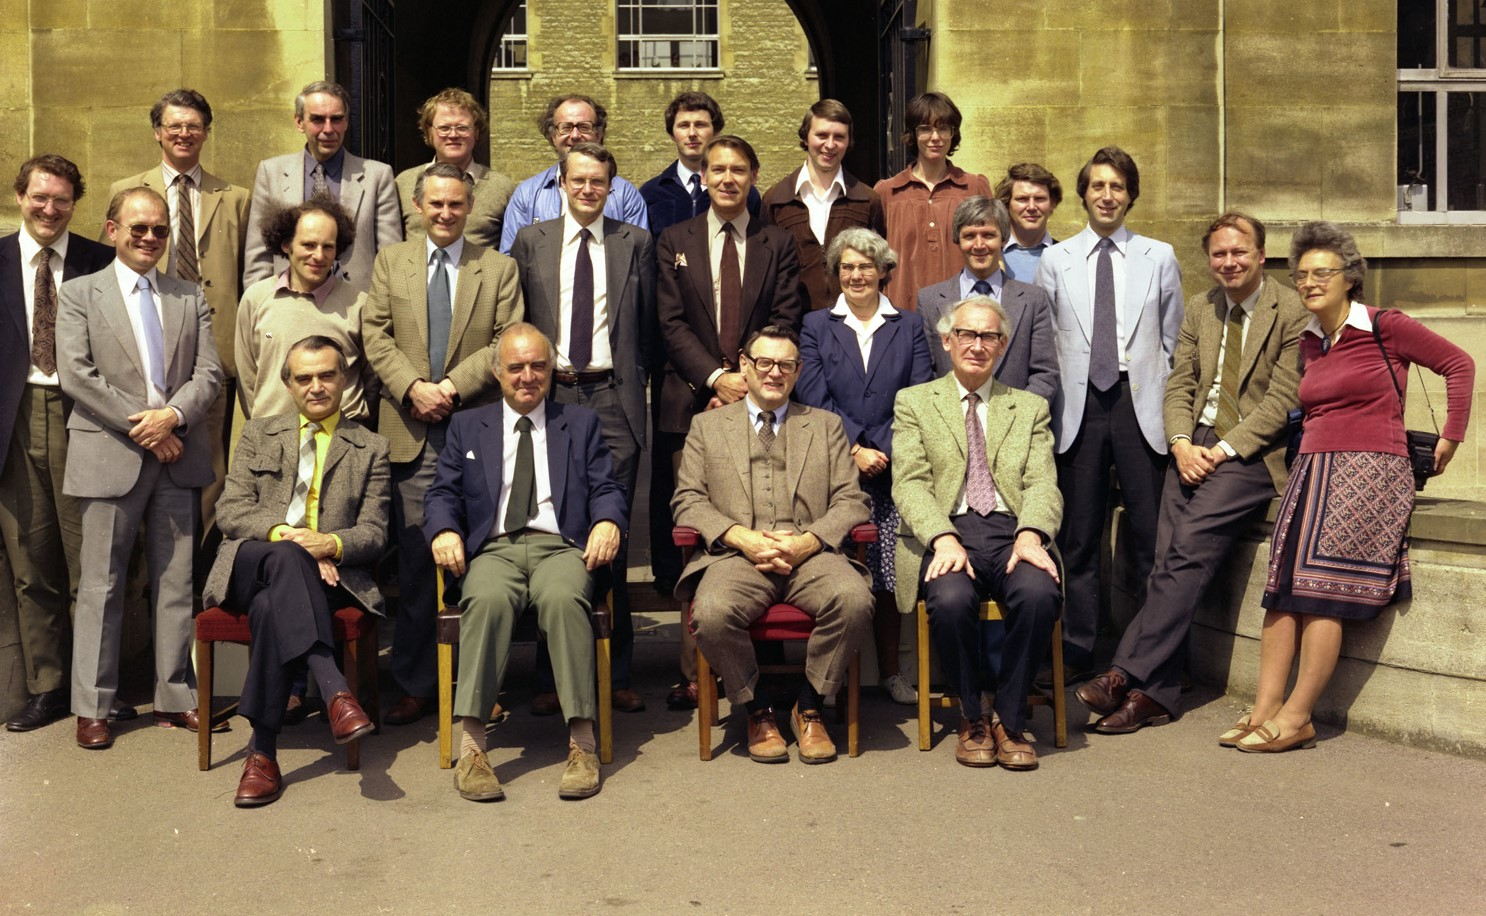 John Goodenough and his research group